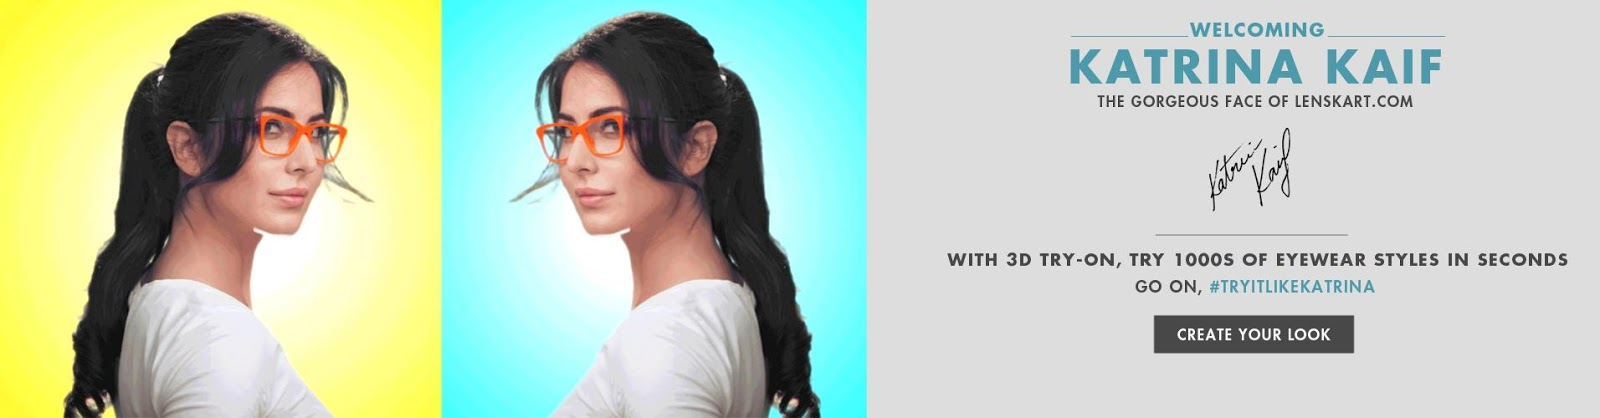 5d9f3e4e585a Continuing with its efforts to revolutionize eyewear globally, Lenskart  partners with Israel based start-up 6over6. The revolutionary technology of  6over6 ...